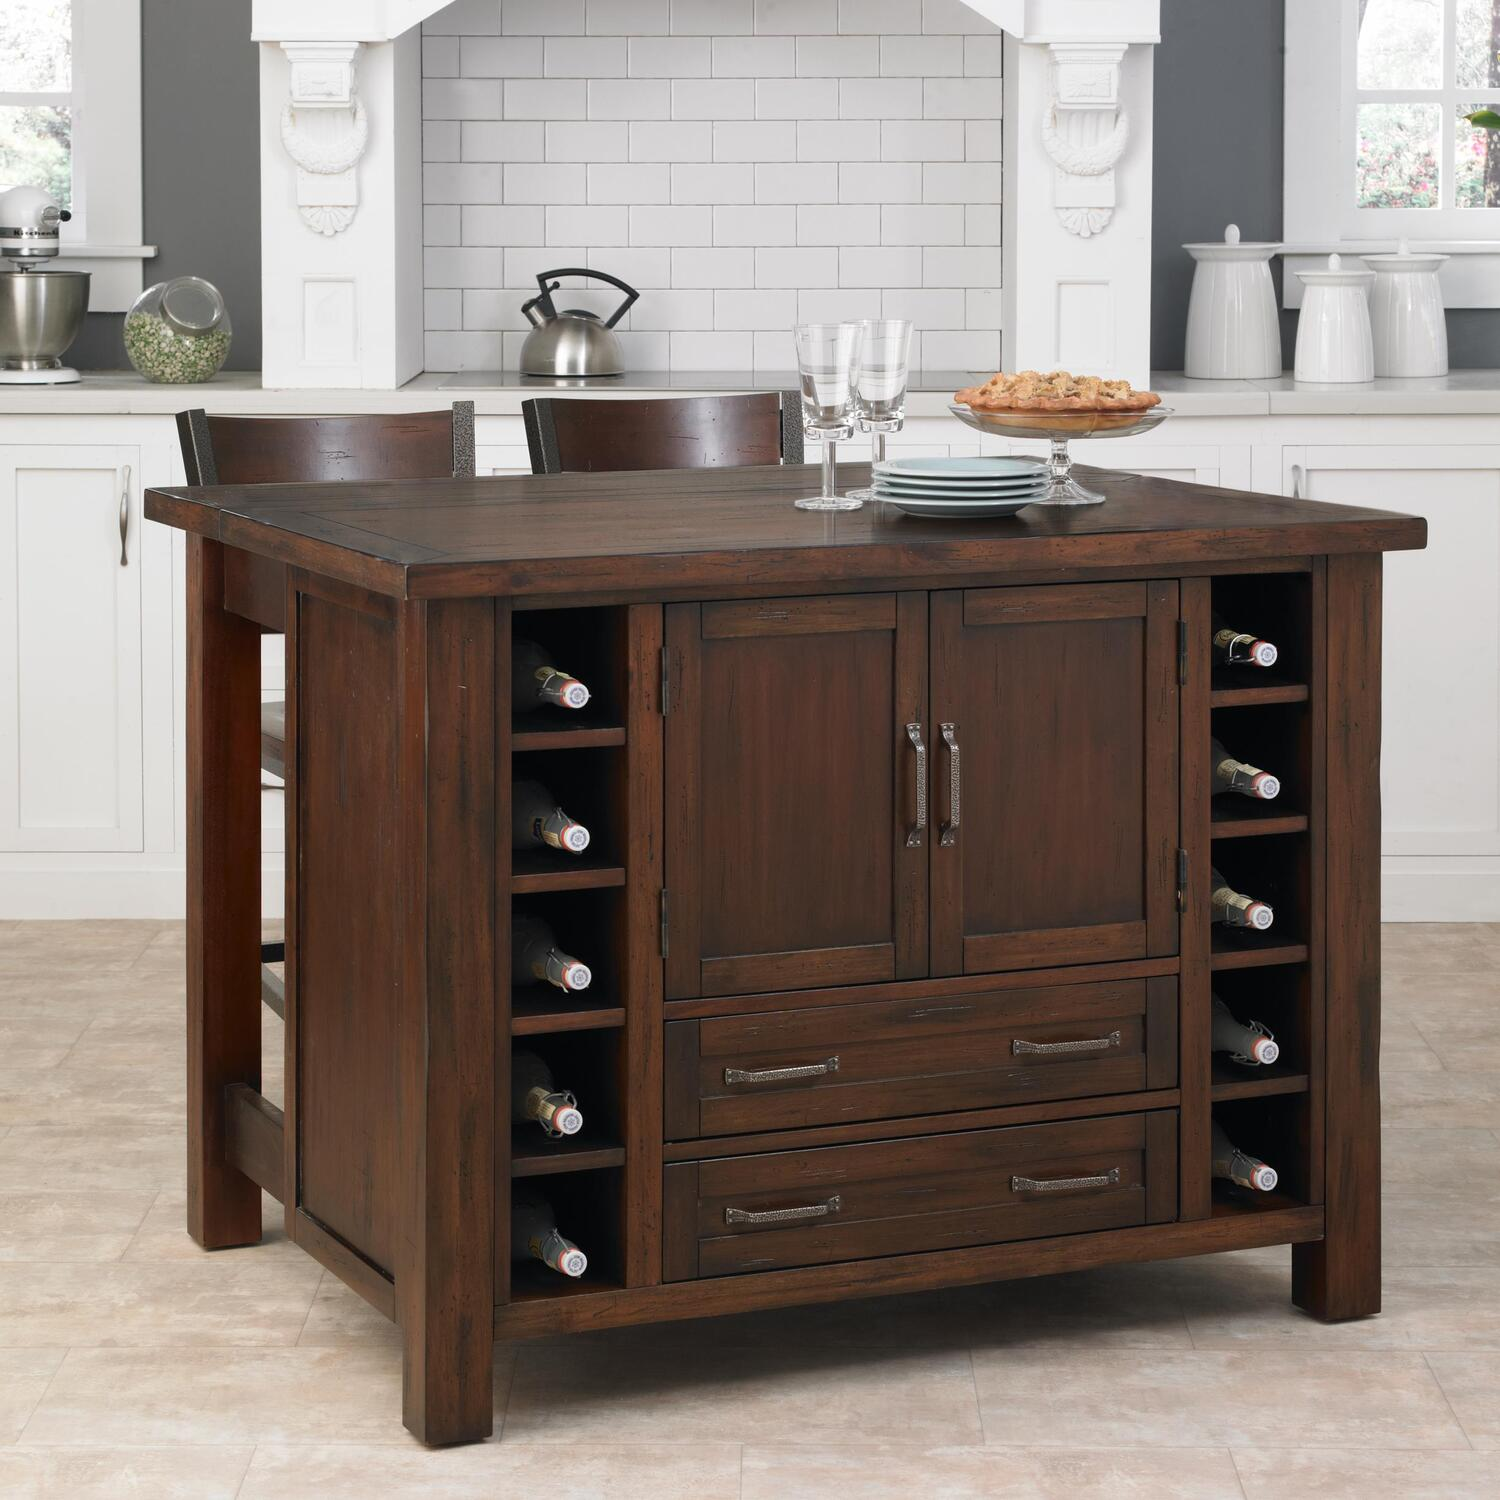 Cabin Creek Kitchen Island With Breakfast Bar And Two